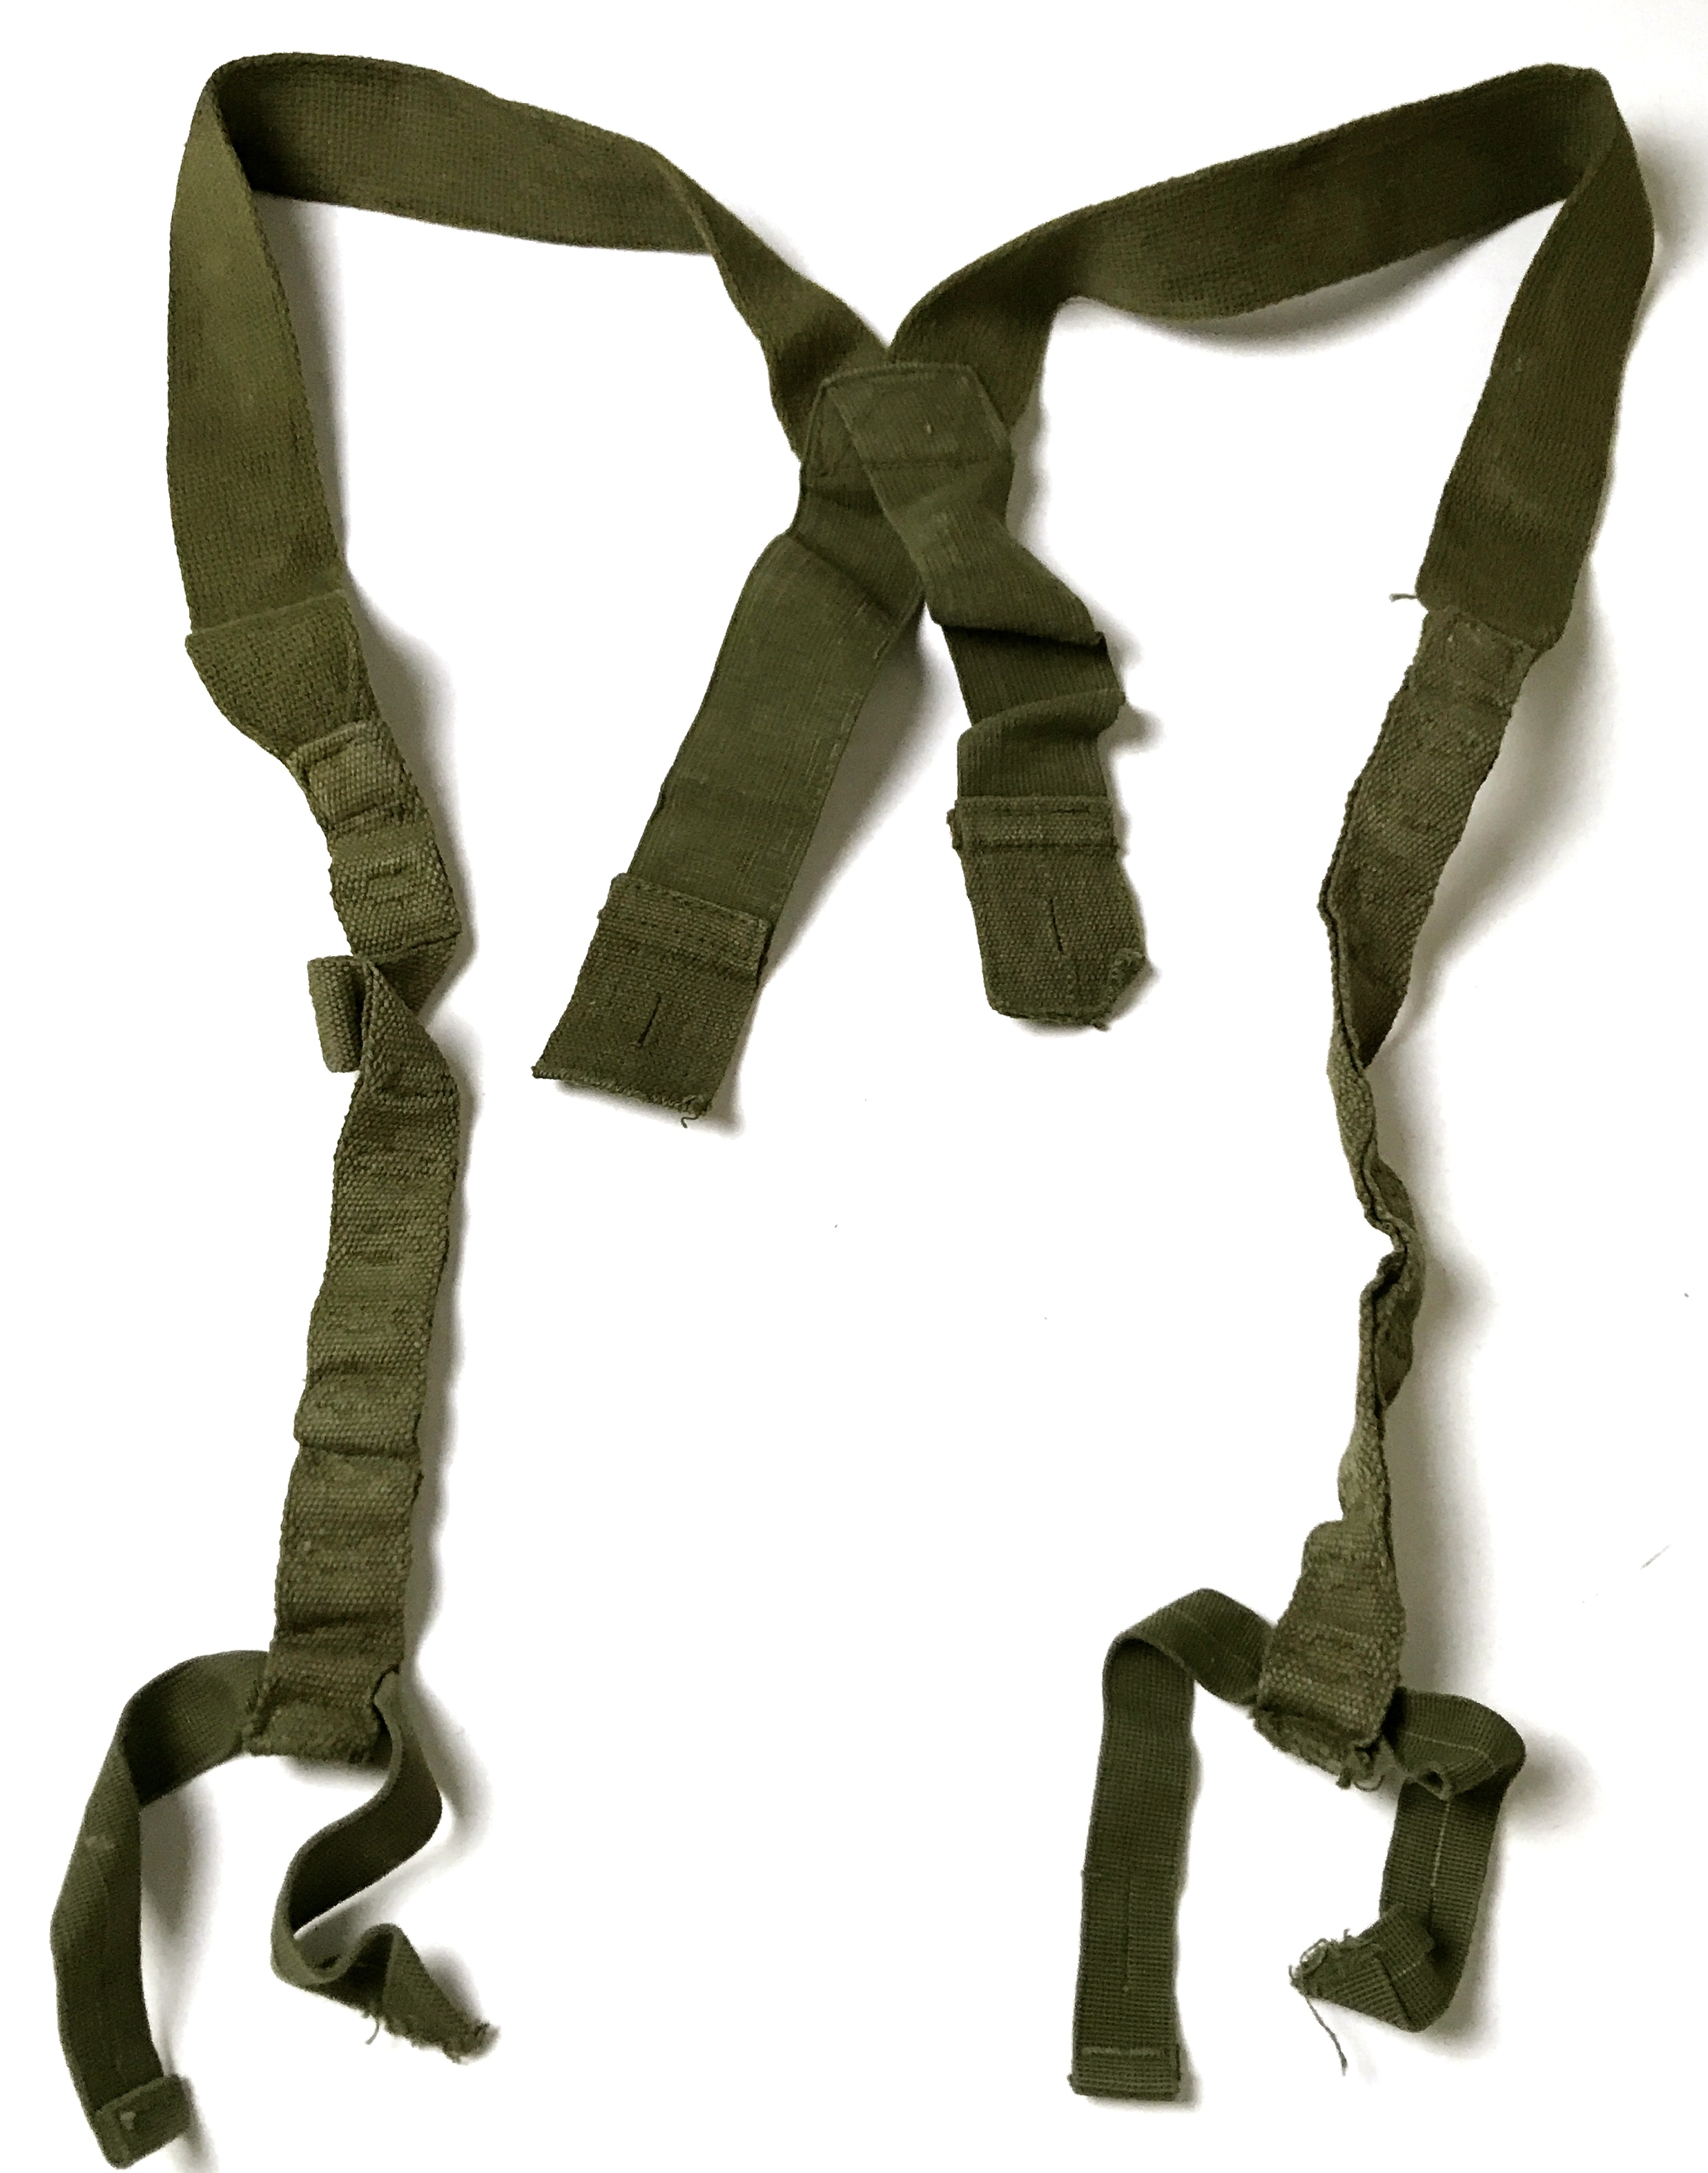 ORIGINAL WWII US M43 OD TROUSERS SUSPENDERS NEW OLD STOCK